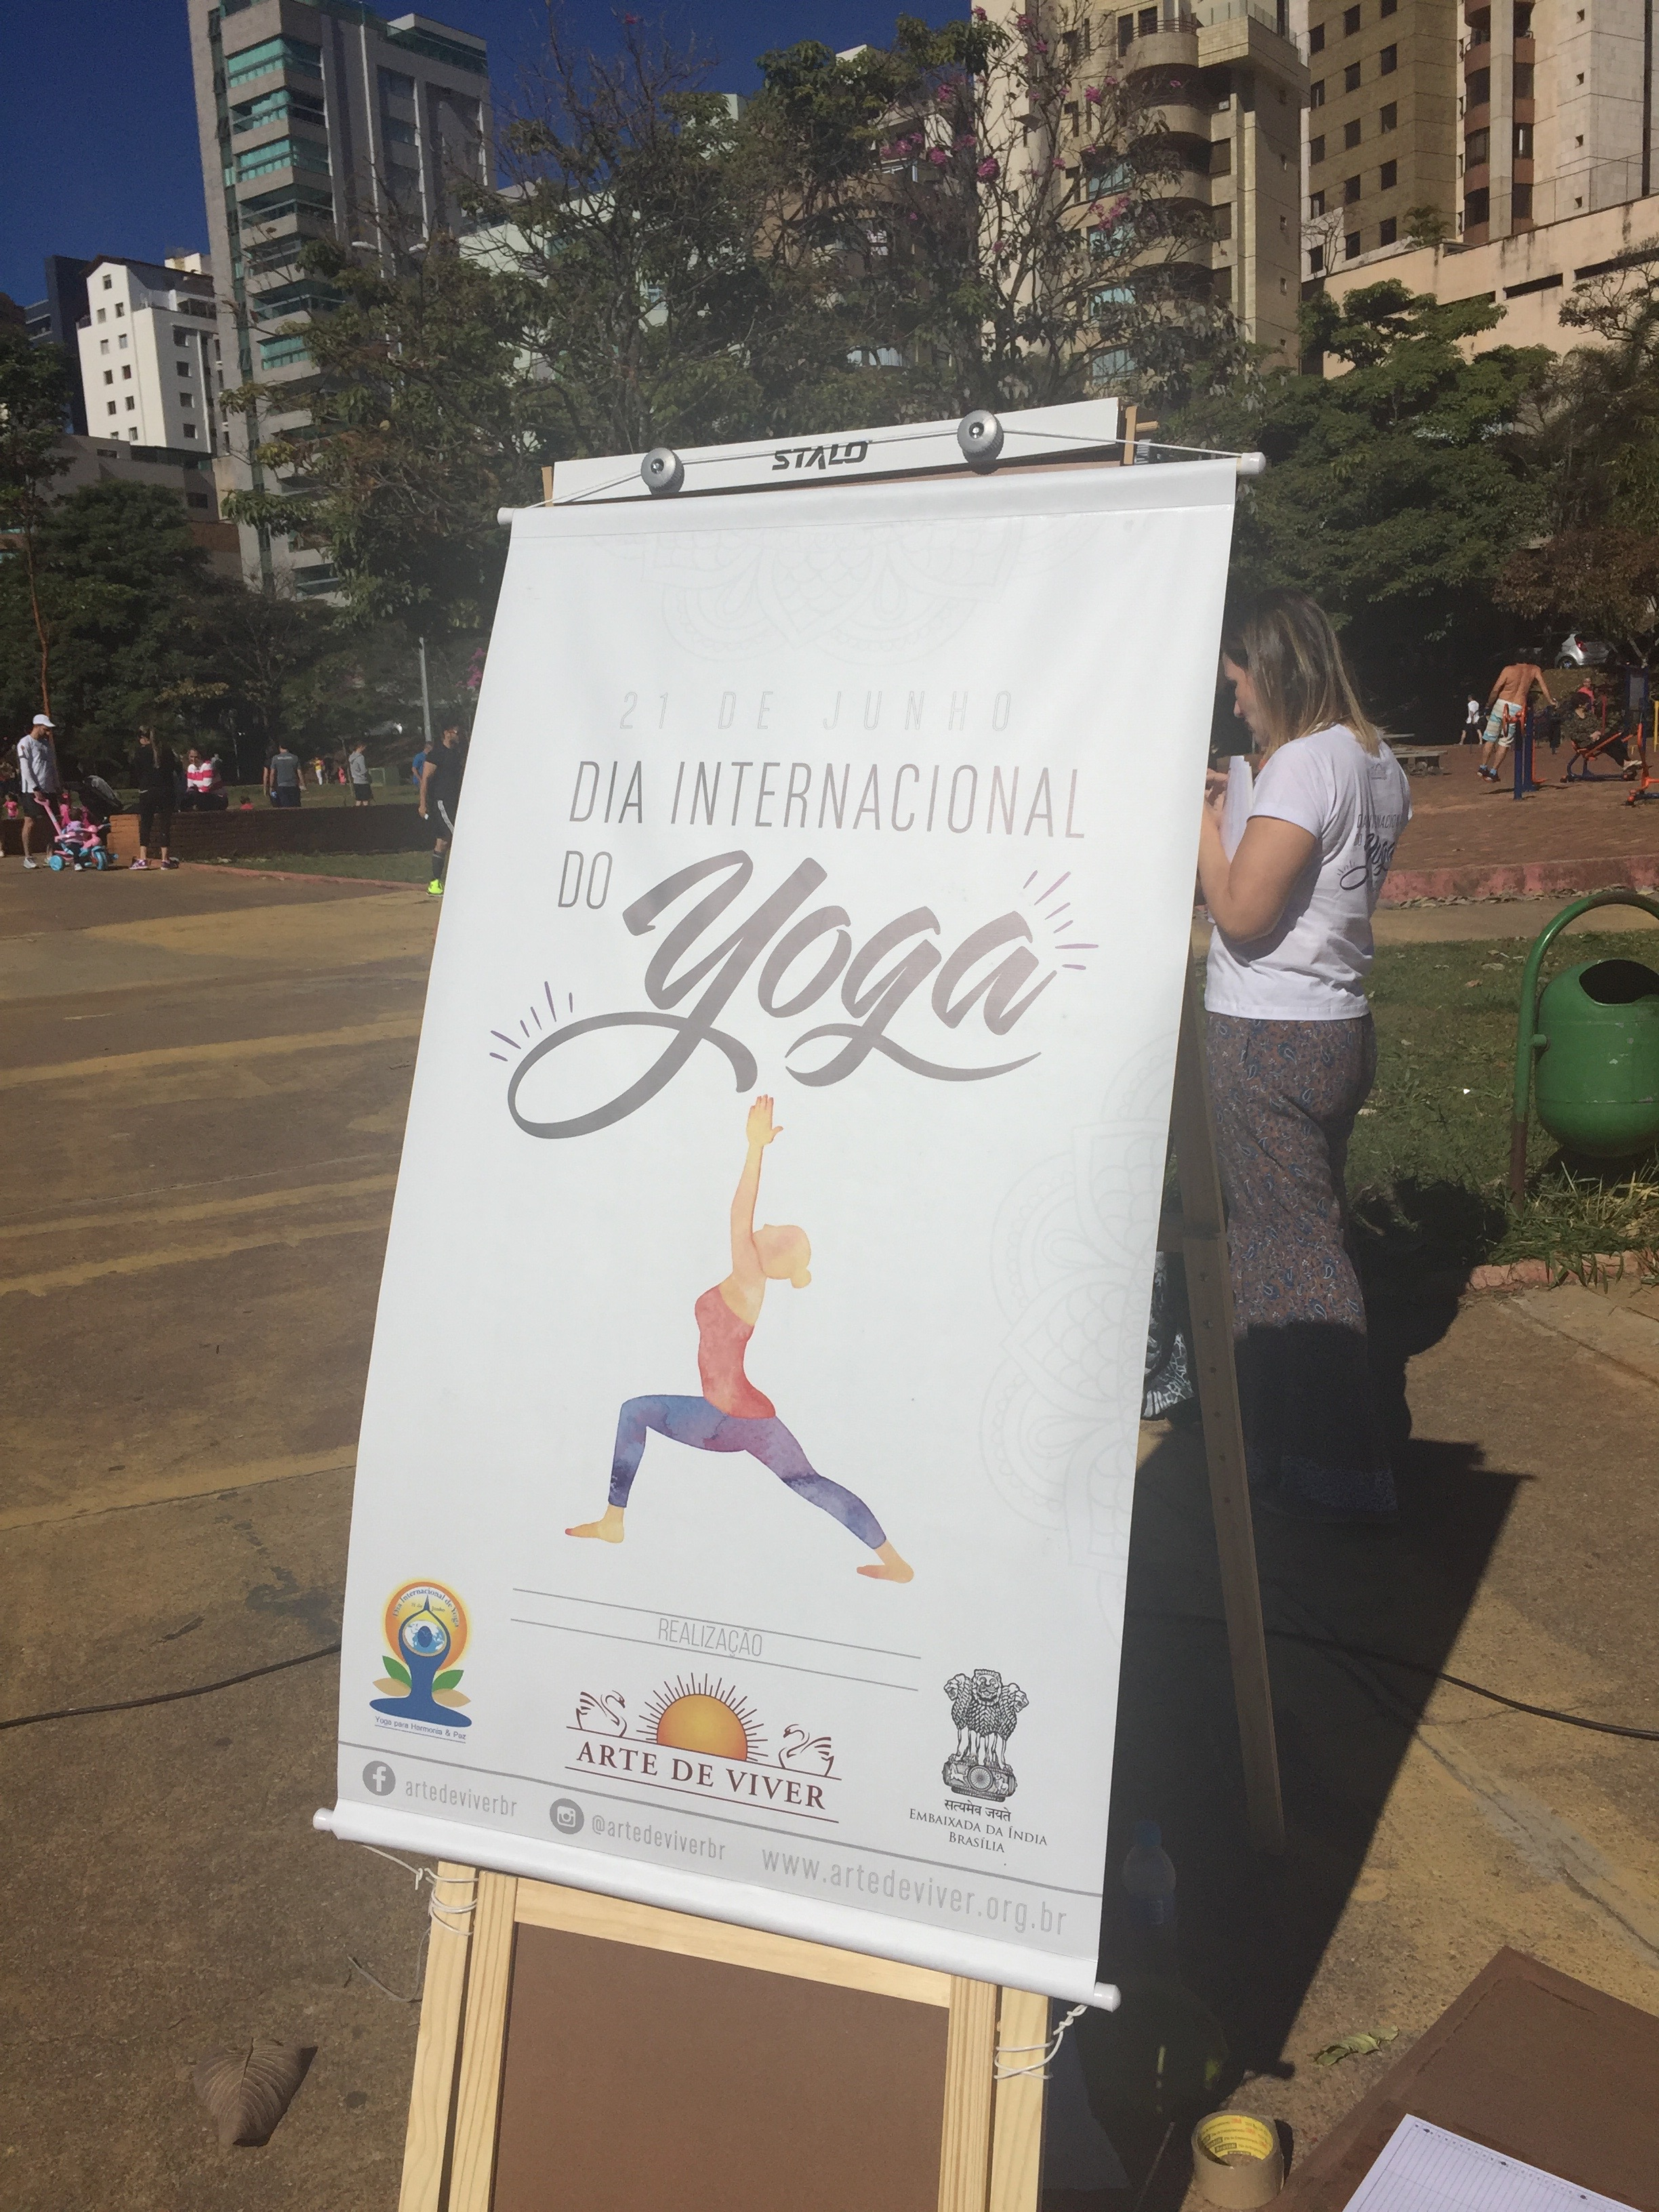 Dia Internacional do Yoga, 2016